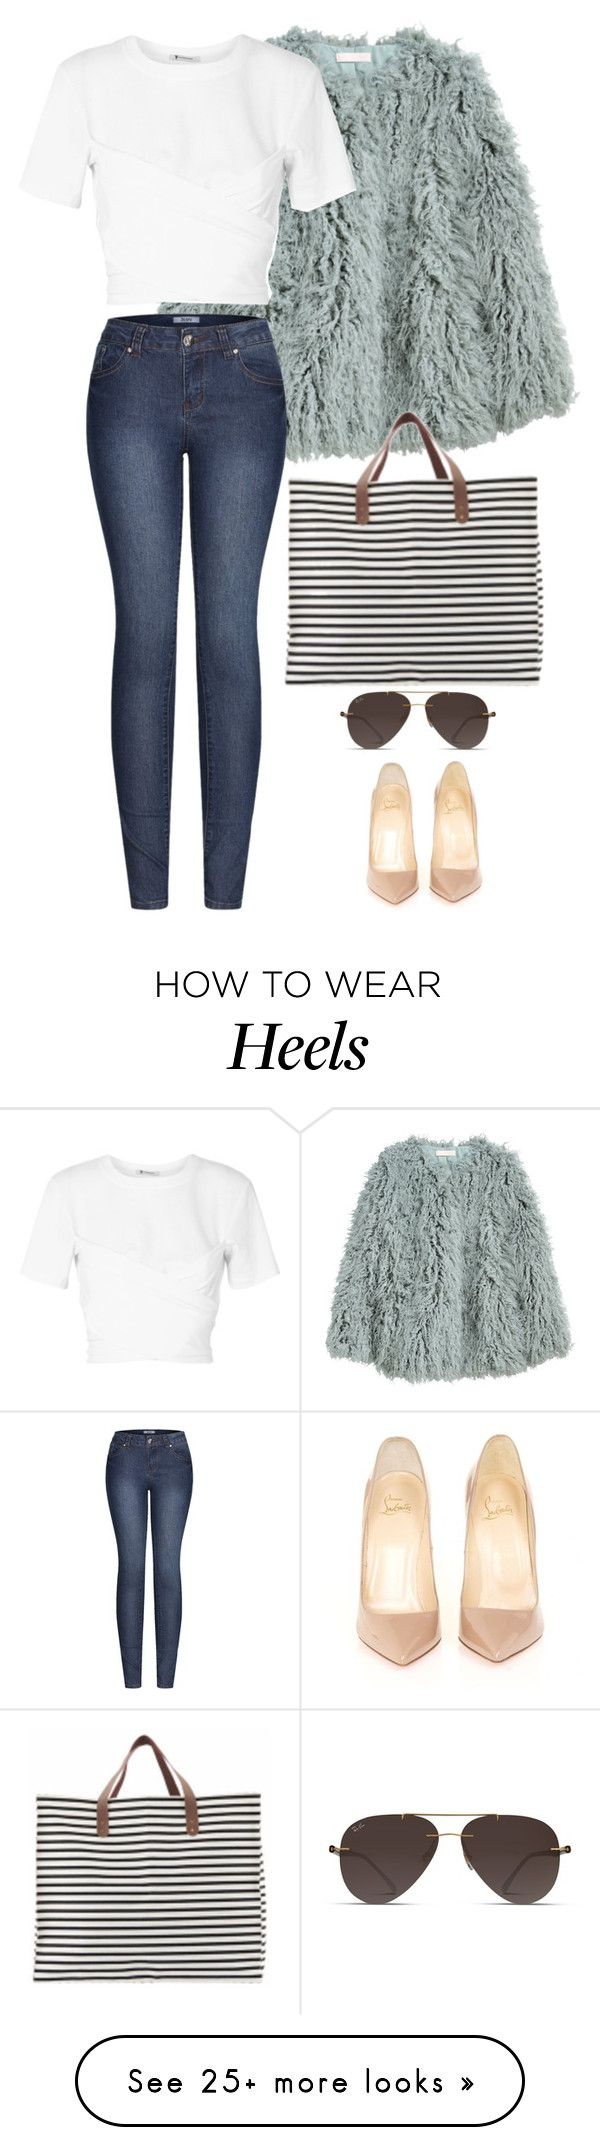 """""""grocery shopping in heels"""" by yolo-12 on Polyvore featuring H&M, T By Alexander Wang, 2LUV, Christian Louboutin, Ray-Ban and House Doctor"""